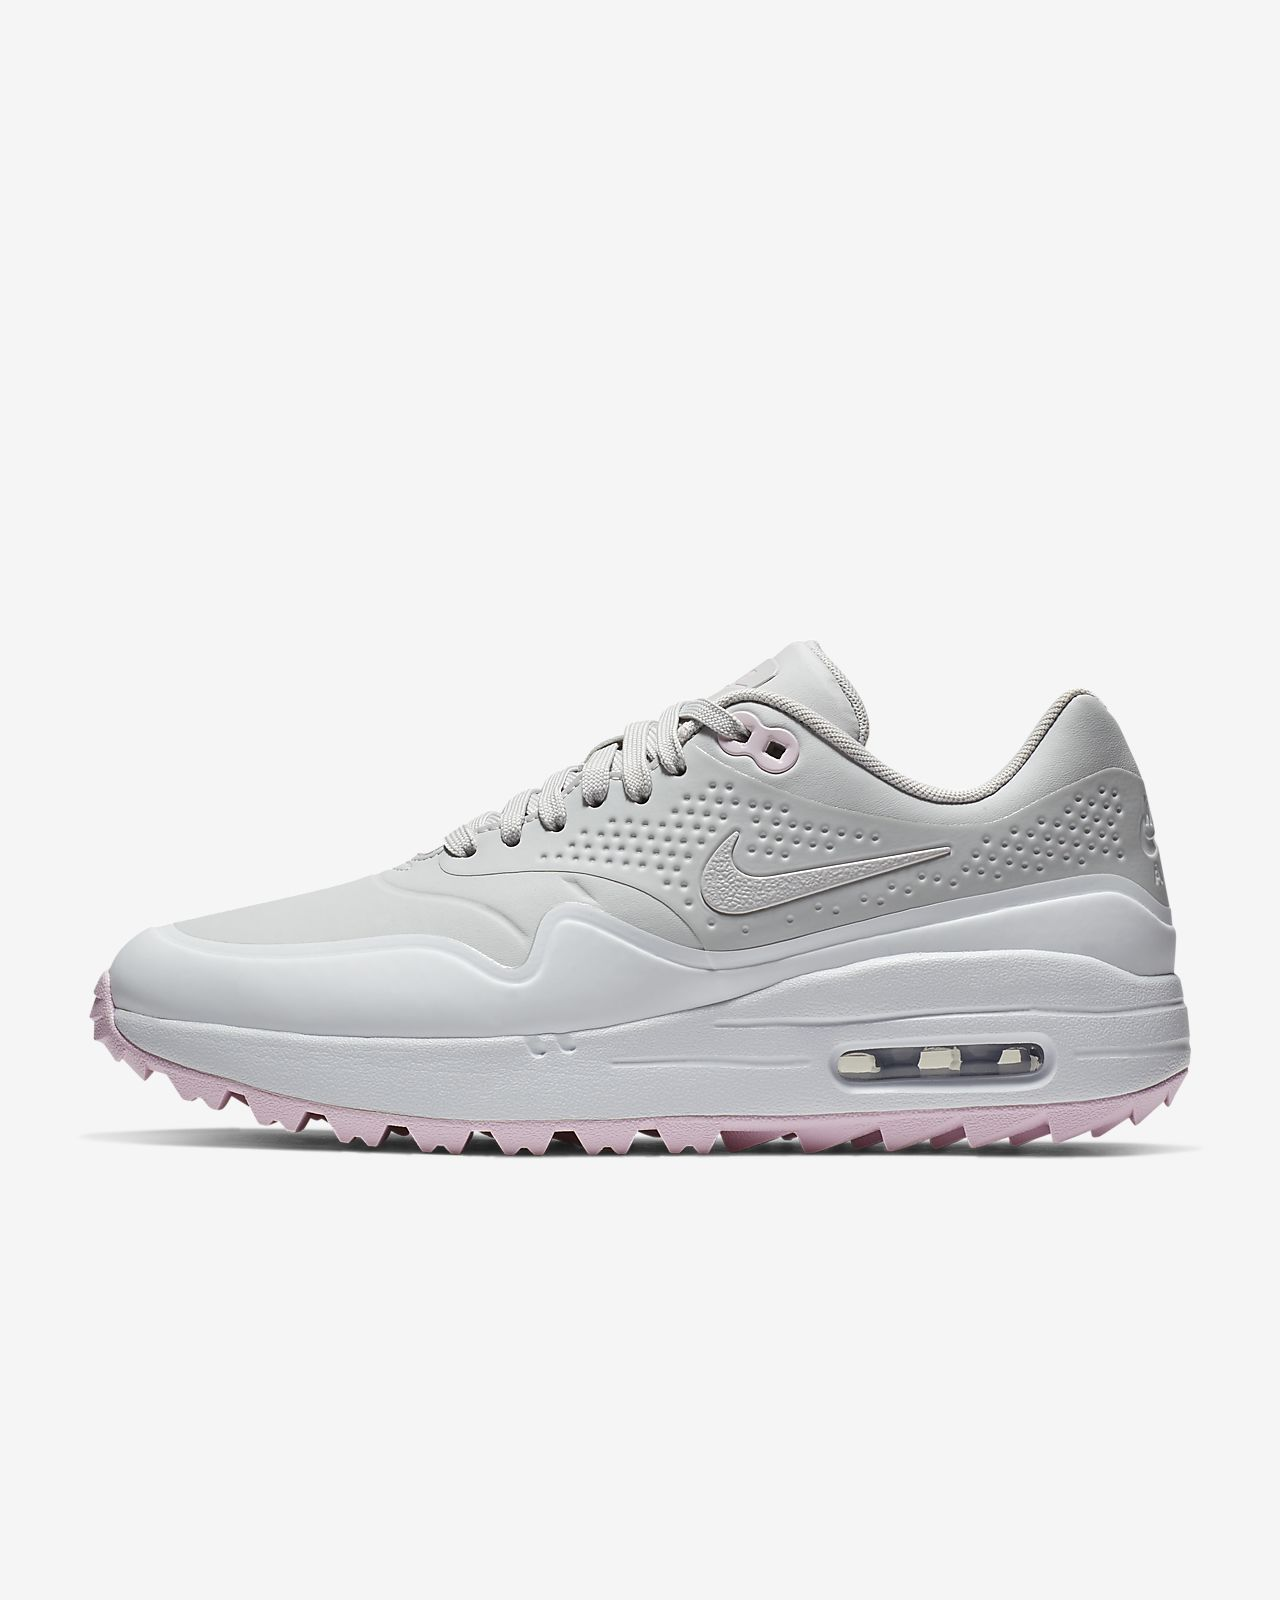 new product 38be2 89922 ... Nike Air Max 1 G Womens Golf Shoe